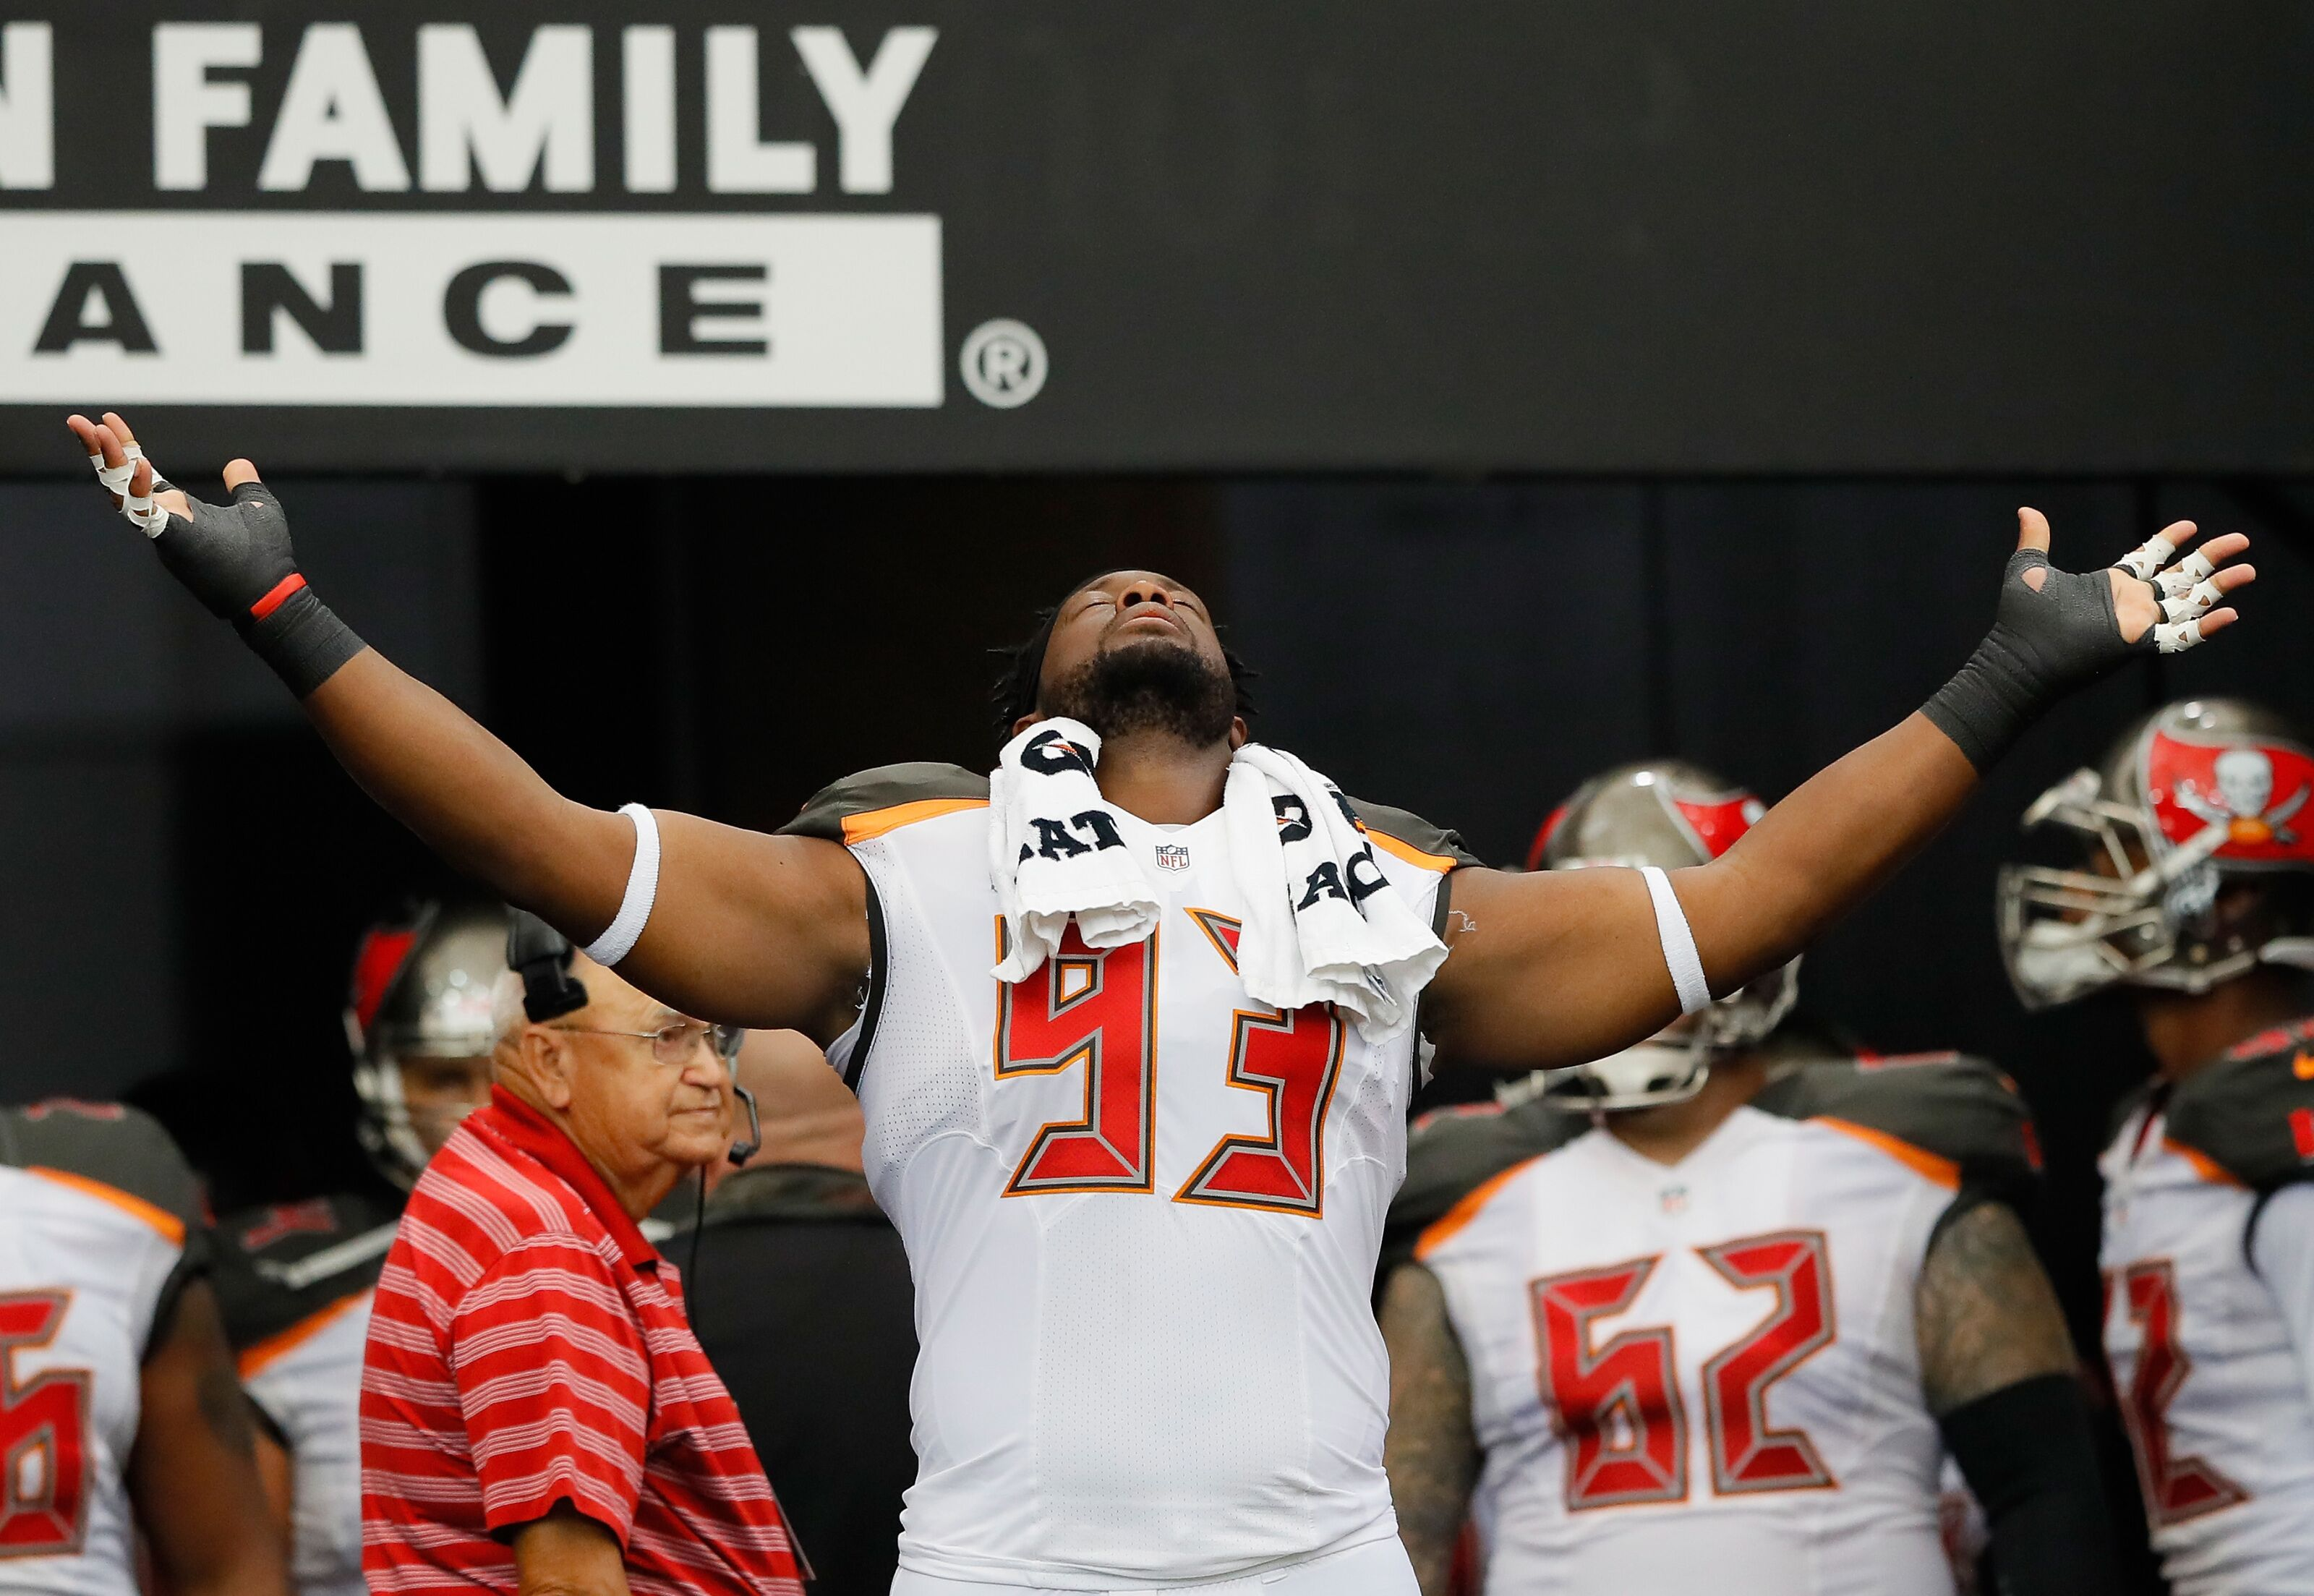 Free agent defensive tackle Gerald McCoy to visit Cleveland Browns on Friday